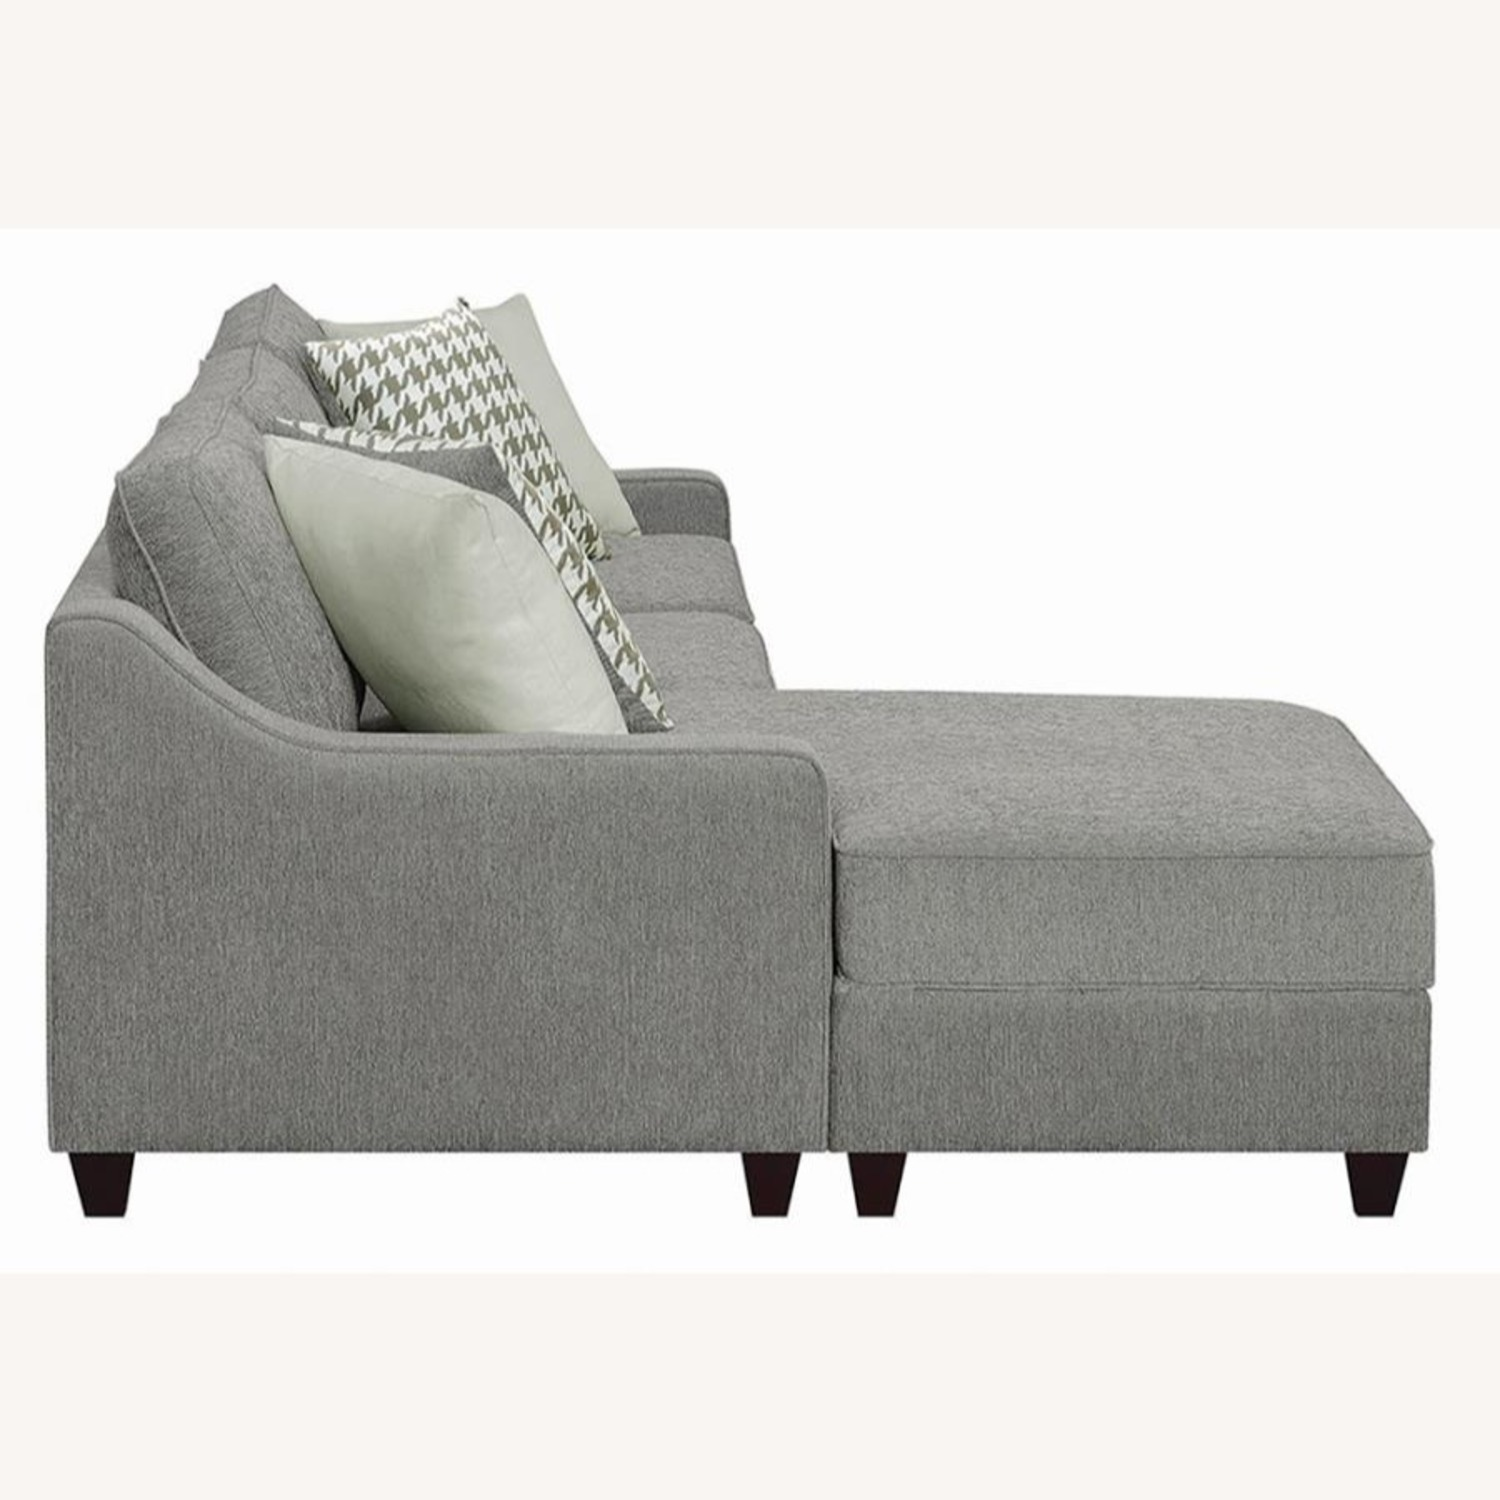 Sectional In Charcoal Chevron Dobby Upholstery - image-5